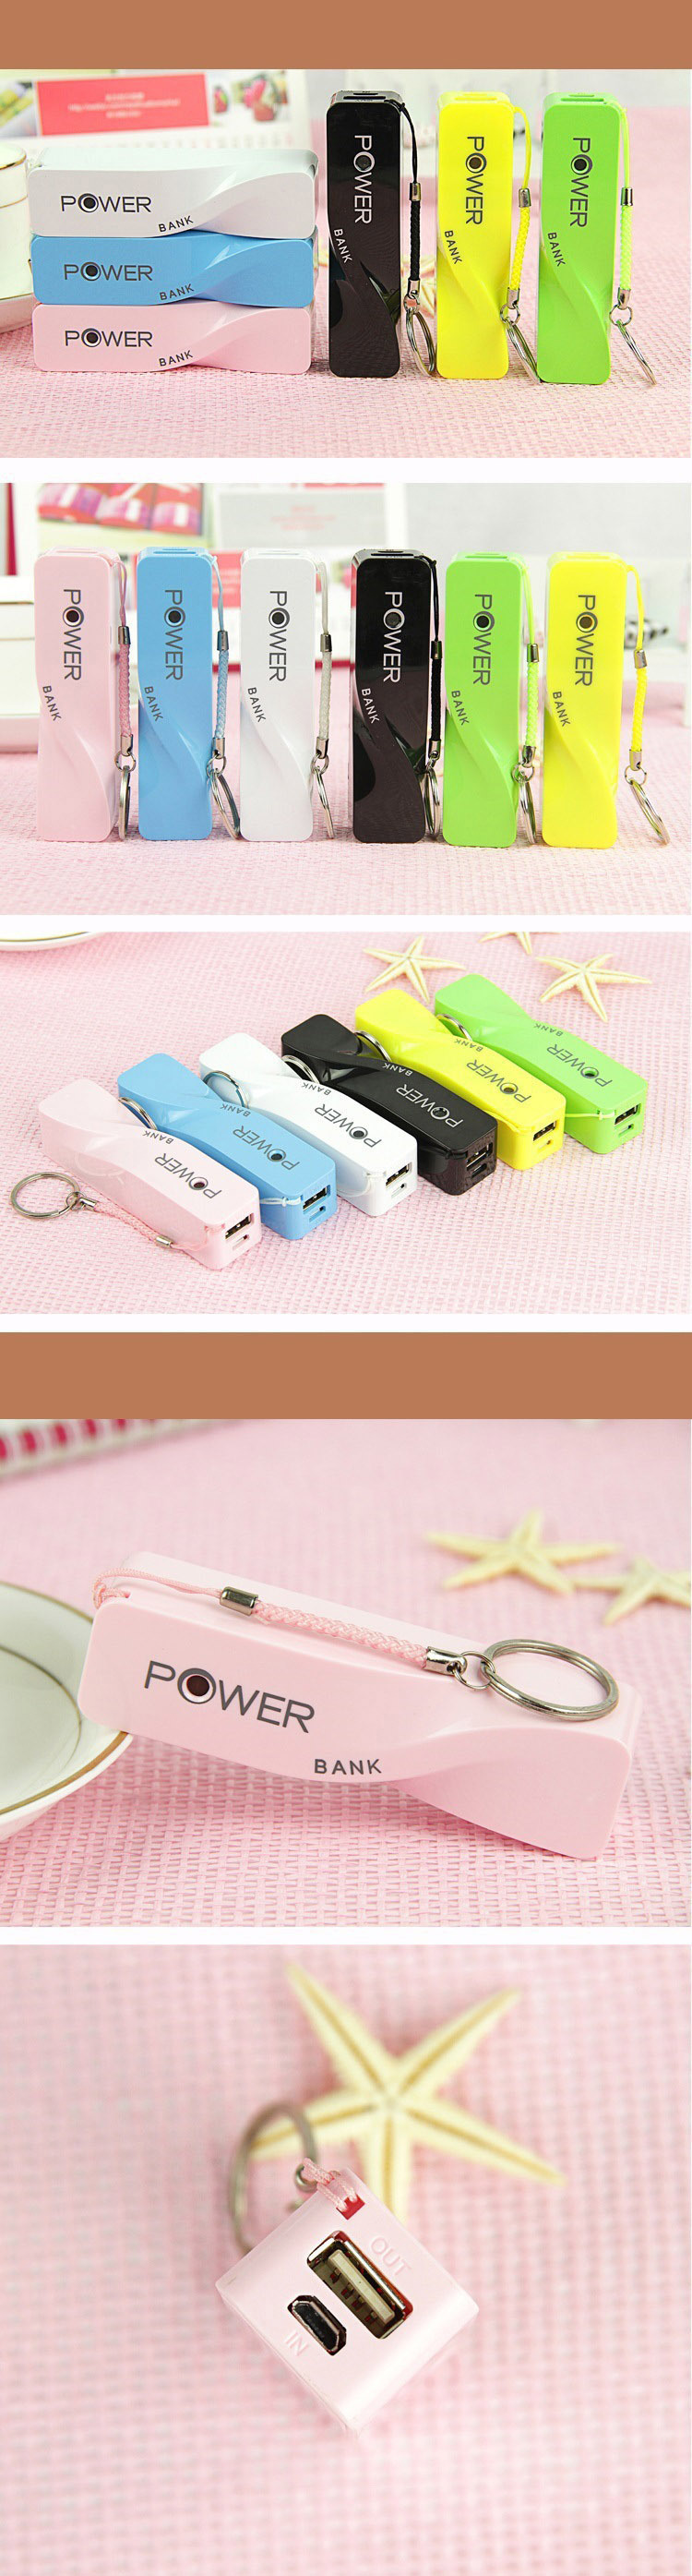 Best seller!!! Colorful mobile usb power bank 2600mAh for Christmas